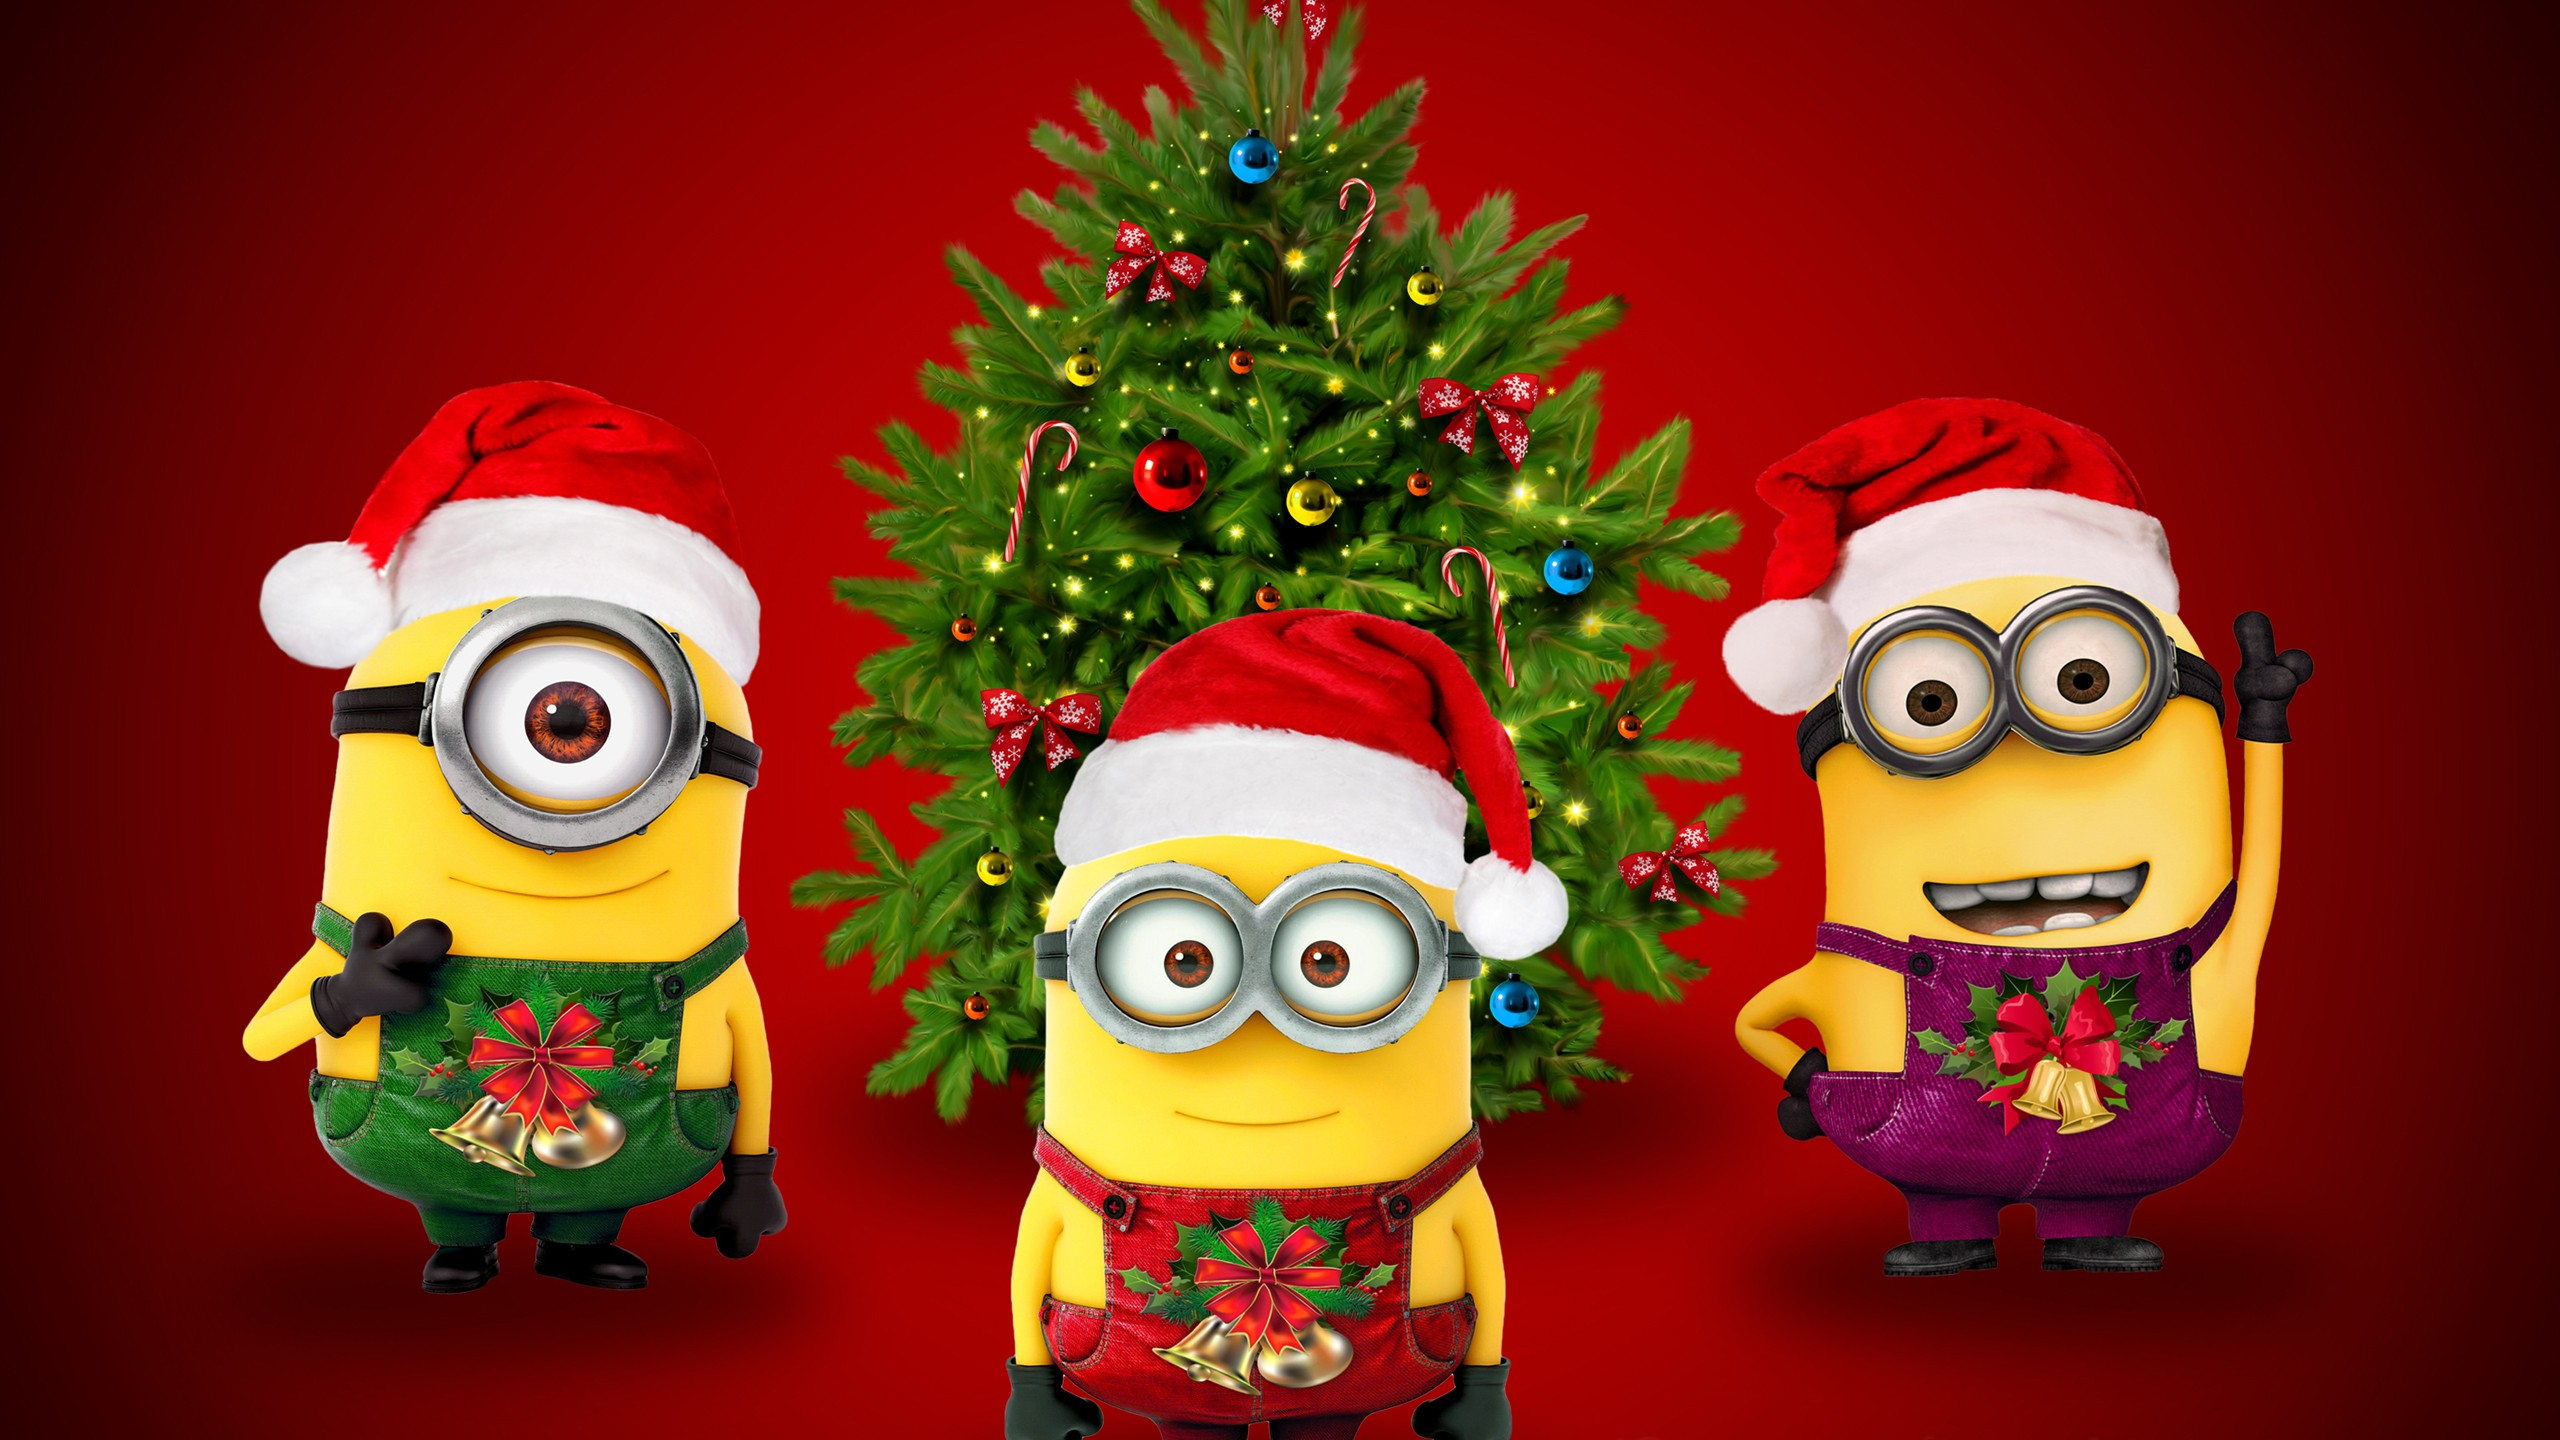 Minions Christmas Hd Wallpaper Background Image 2560x1440 Id 775263 Wallpaper Abyss